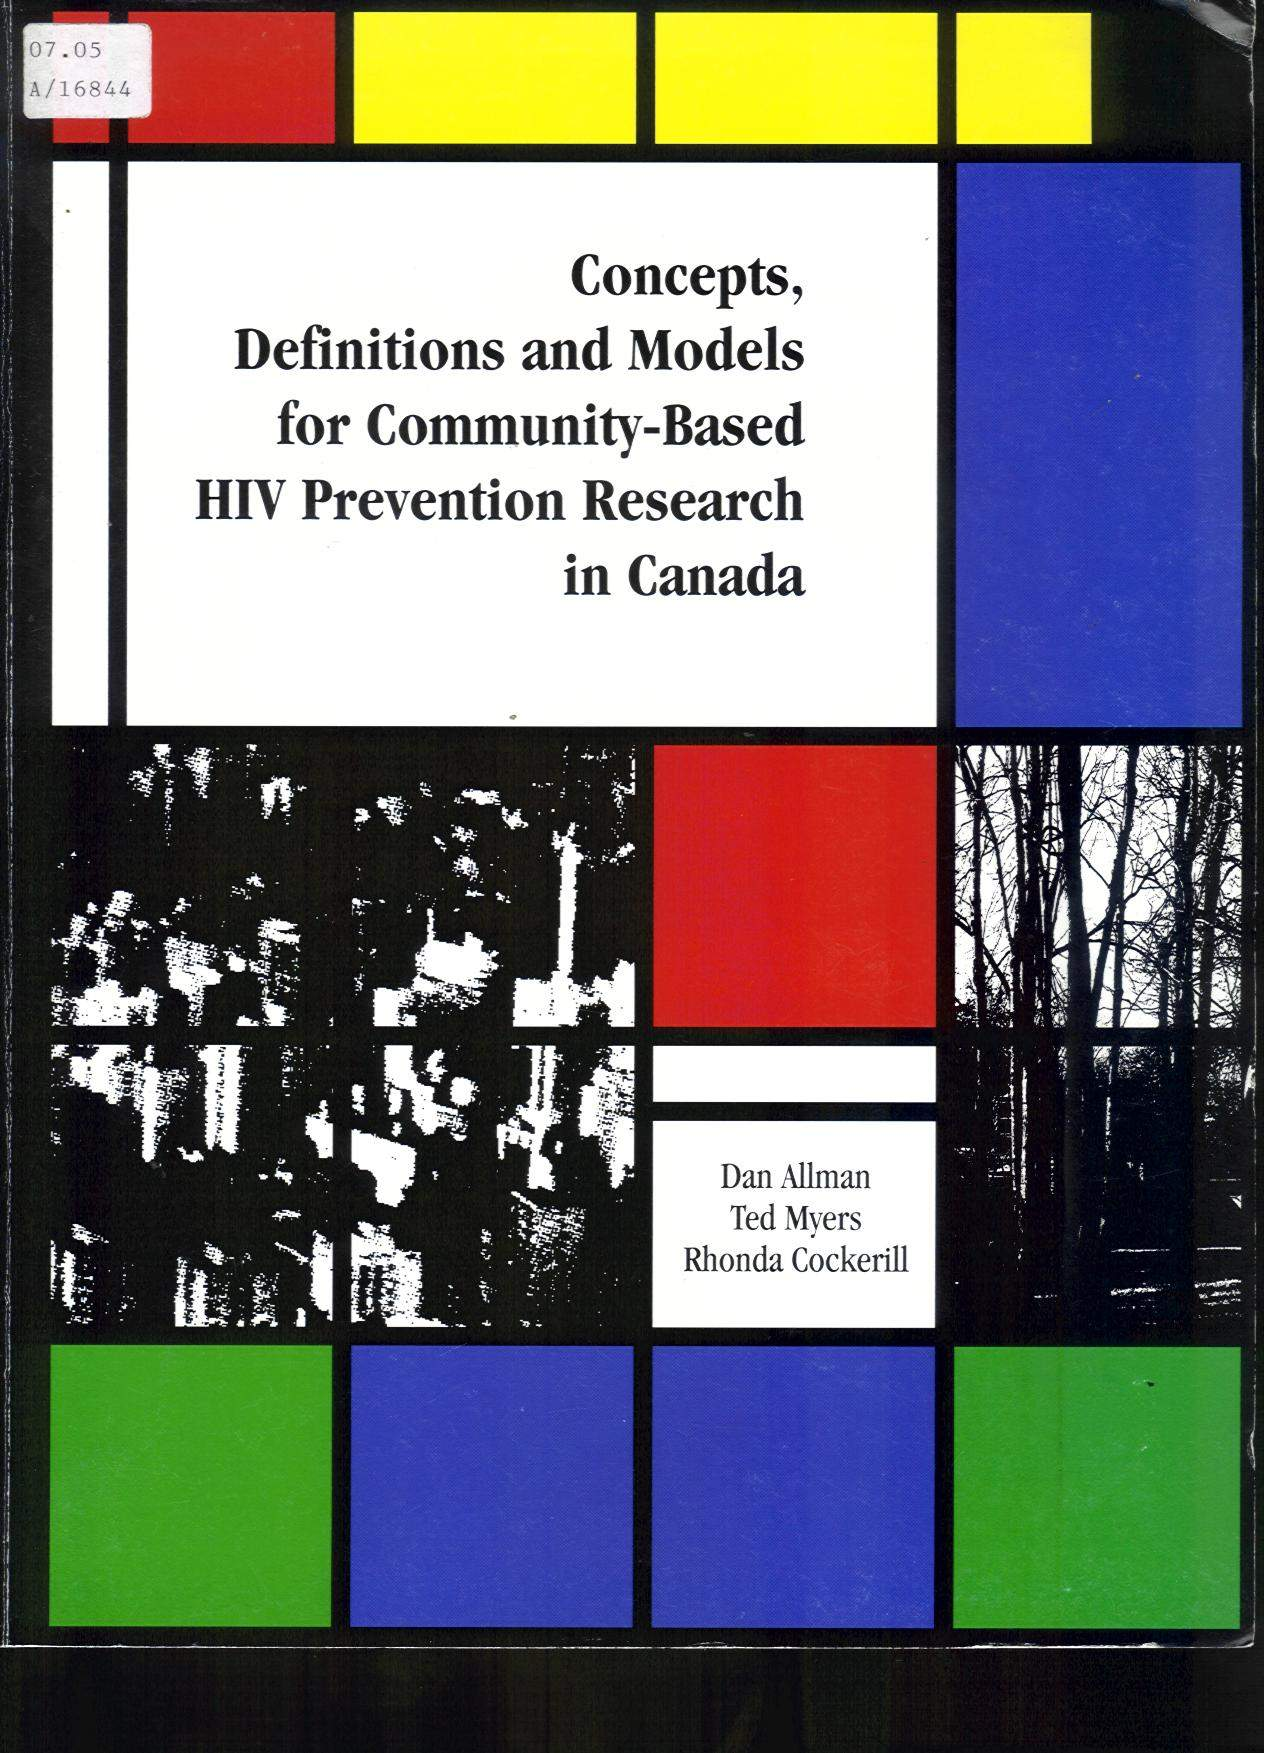 Concepts, Definitions and Models for Community-based HIV Prevention Research in Canada